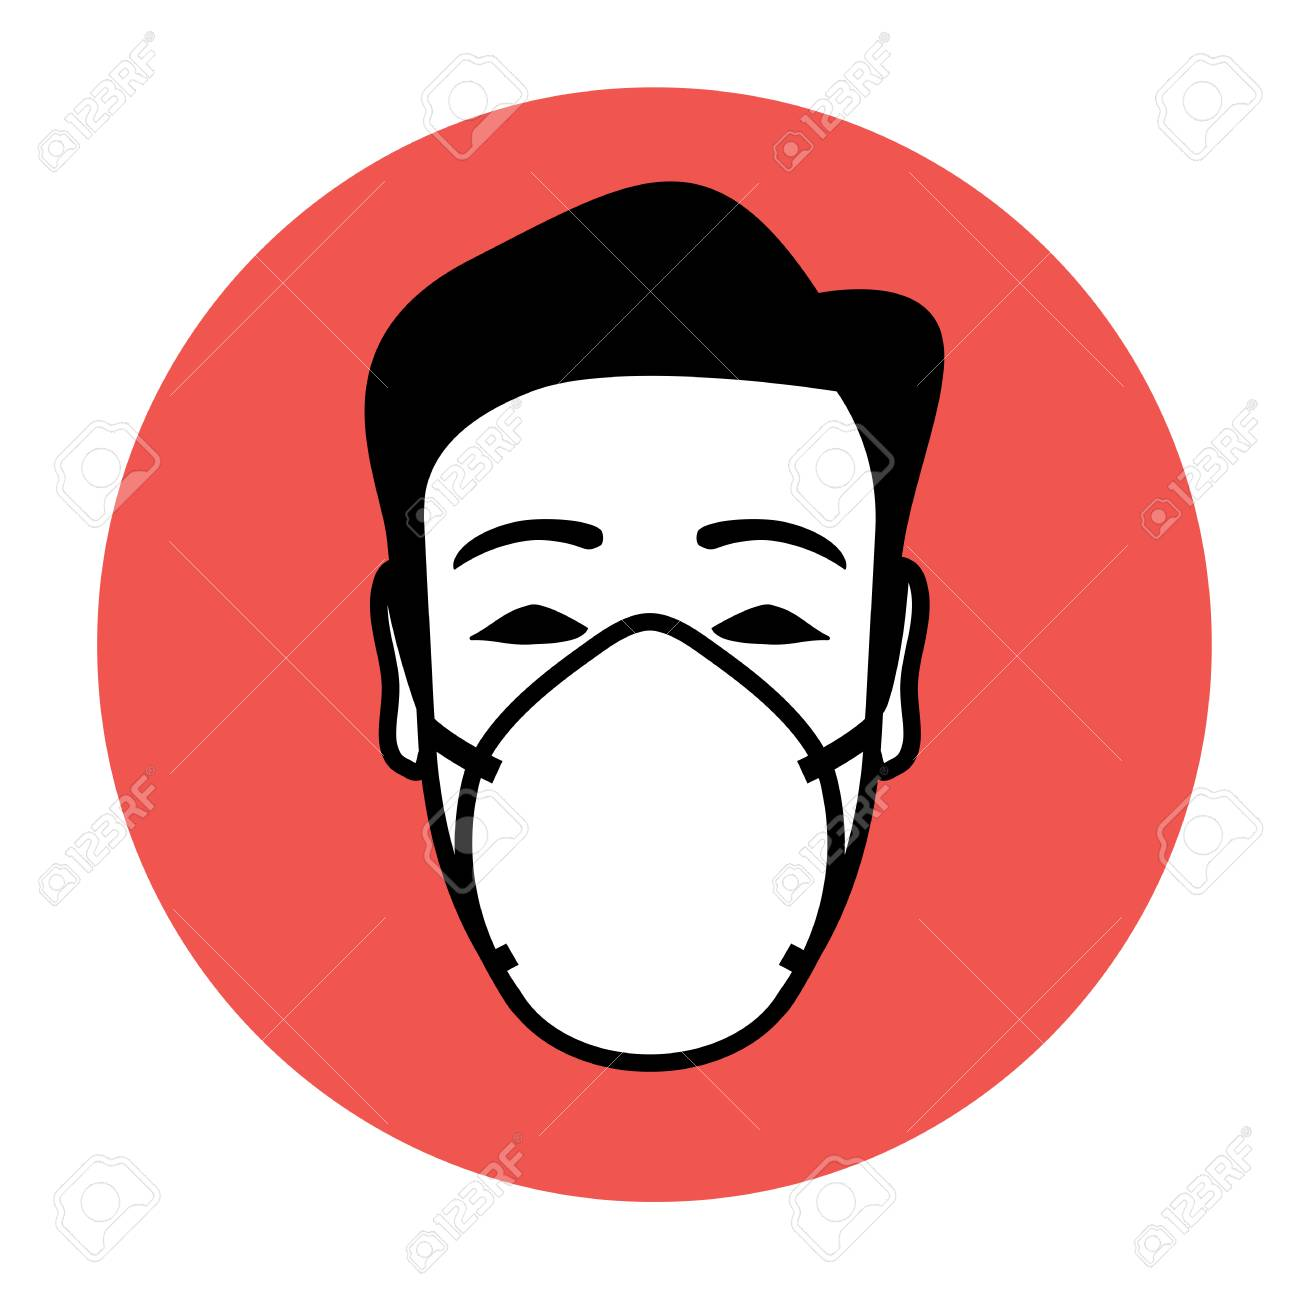 Protective mask wearing icon with potential of warning and advising - 91126472